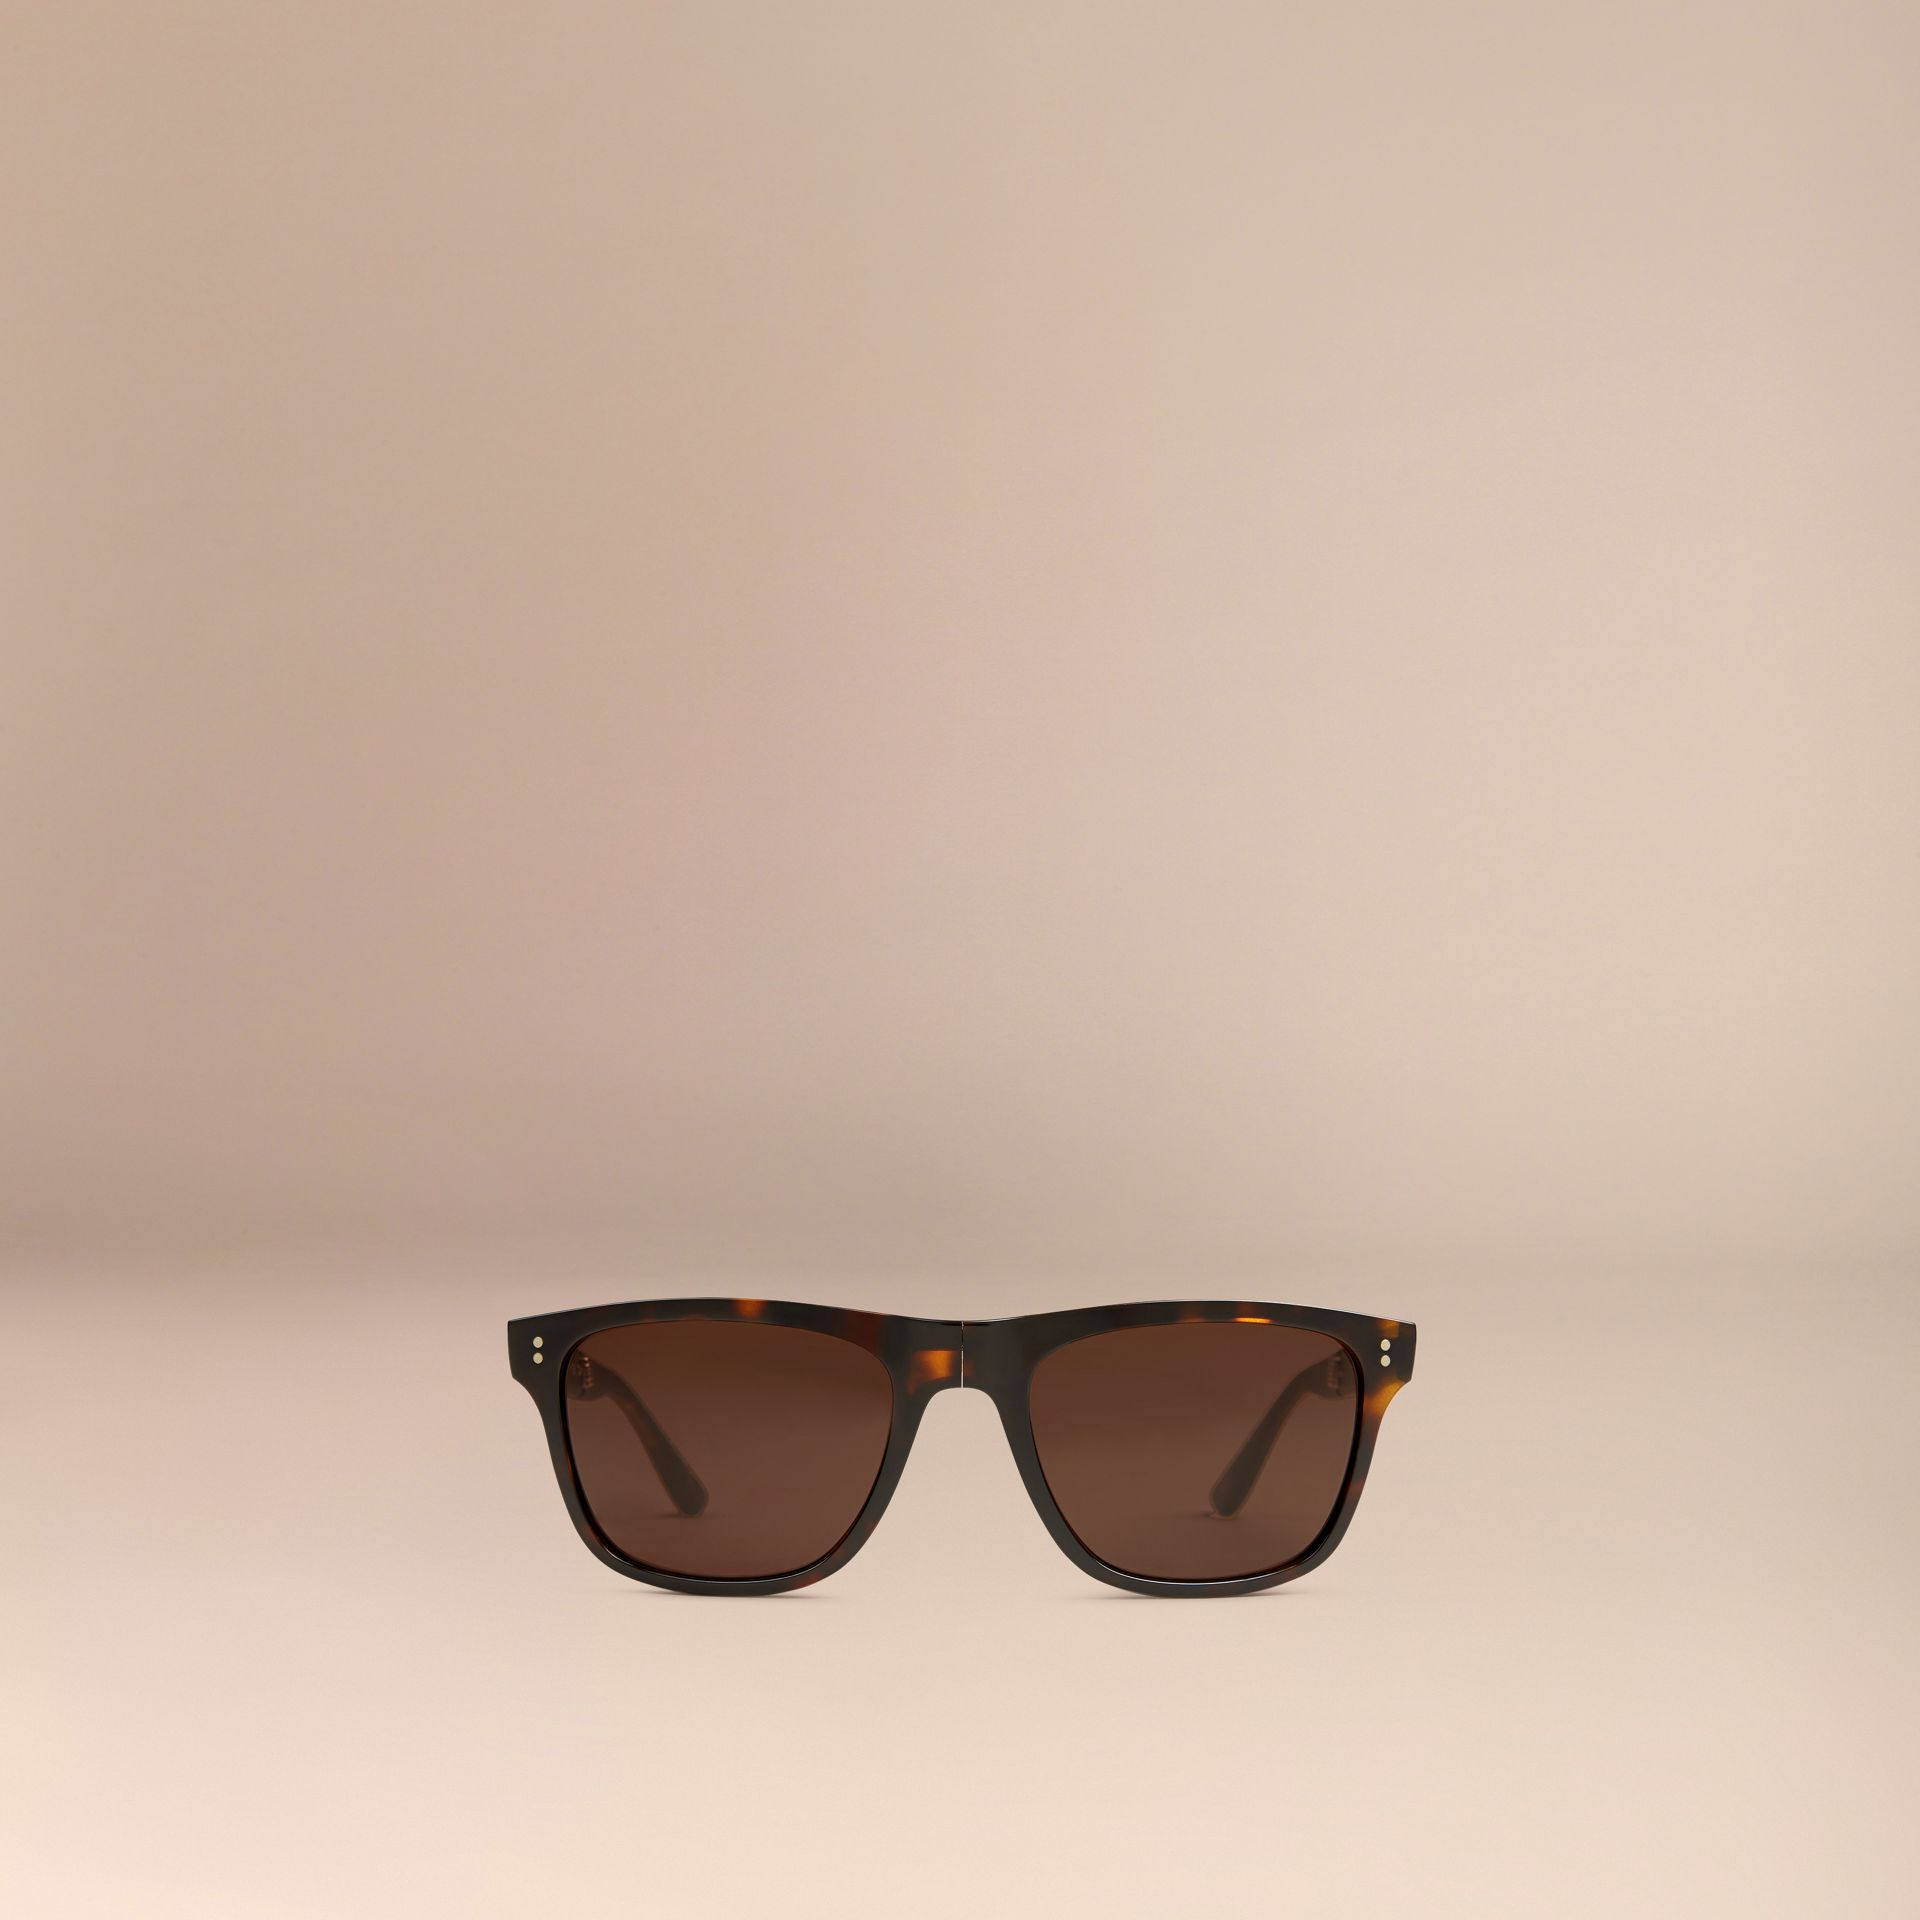 Folding Rectangular Frame Sunglasses in Dark Brown - Men | Burberry Canada - gallery image 2